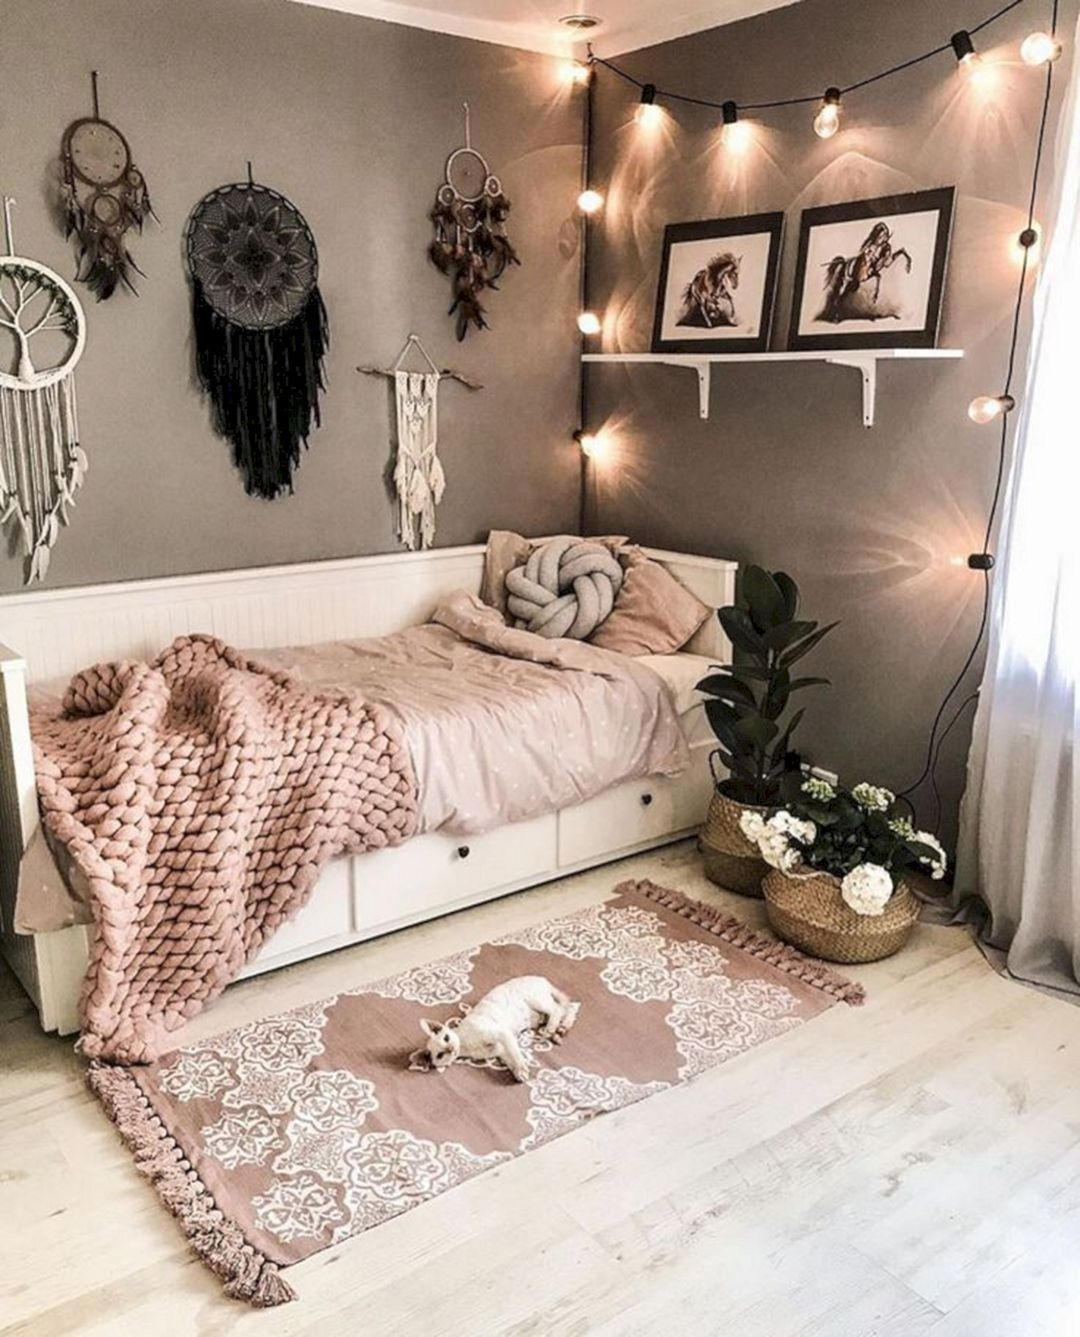 Chambre Idées 273804921034597807 Dorm Room Decor Diy Bedroom Decor Bedroom Decor